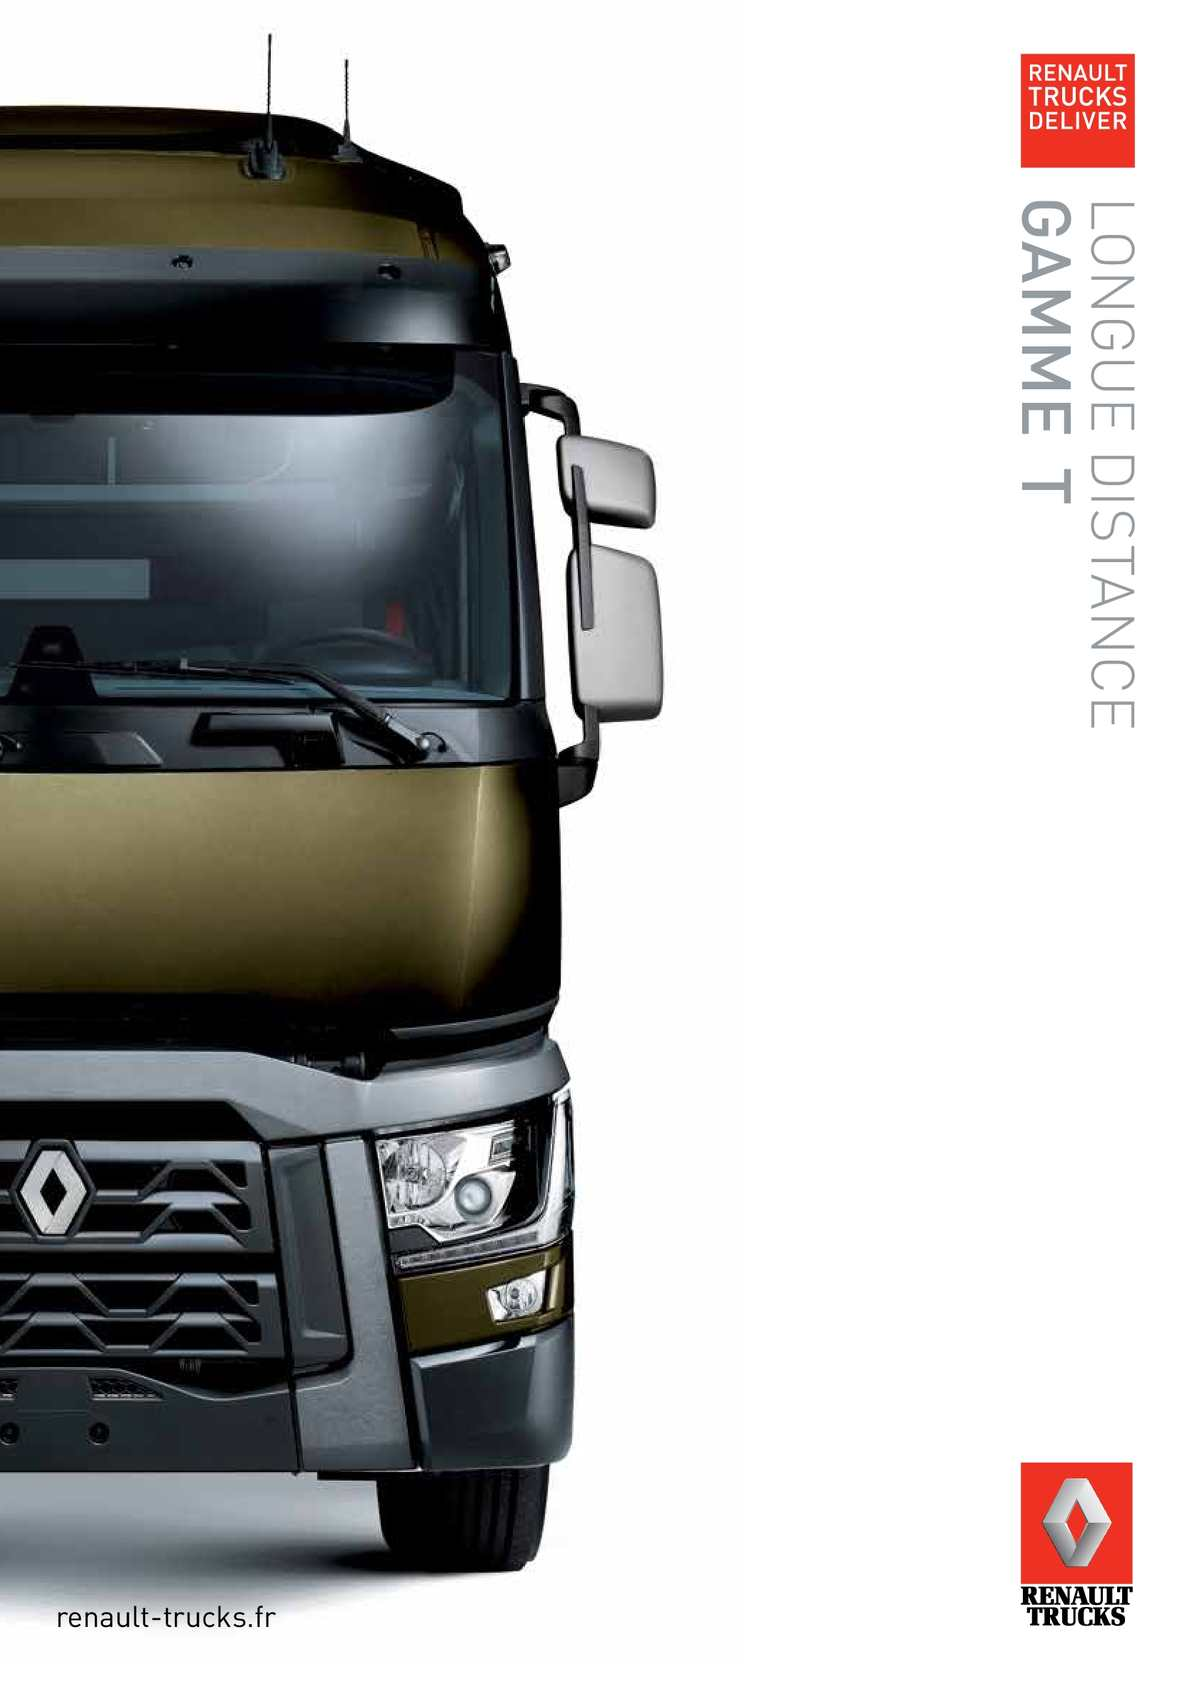 Calam o renault trucks t gamme longue distance fr france for Renault gamme t interieur